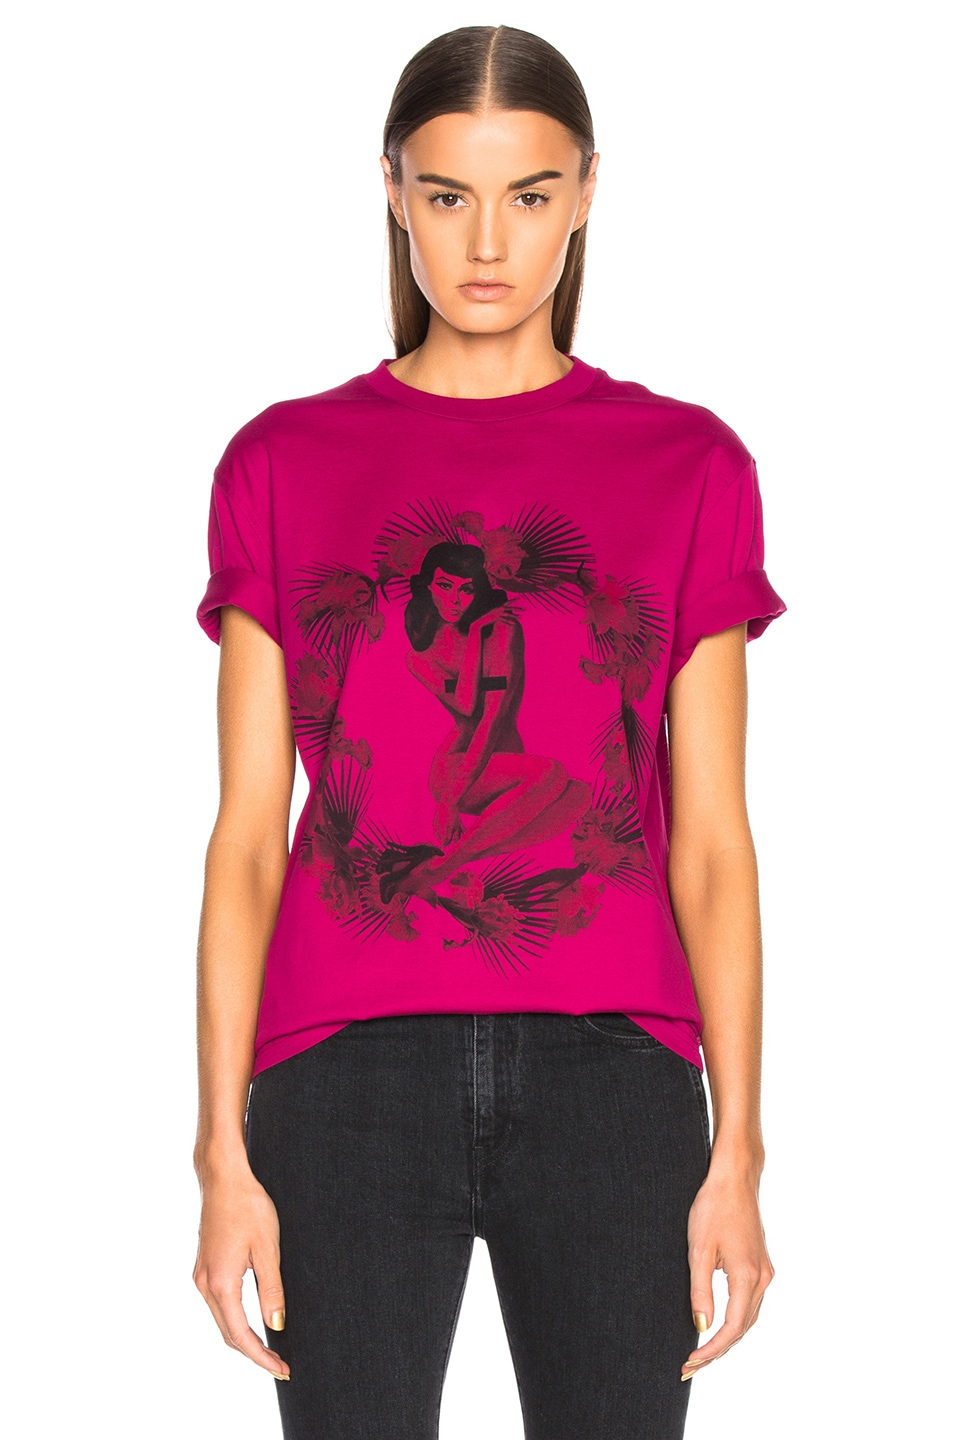 Givenchy Pin Up Printed Graphic Tee in Pink